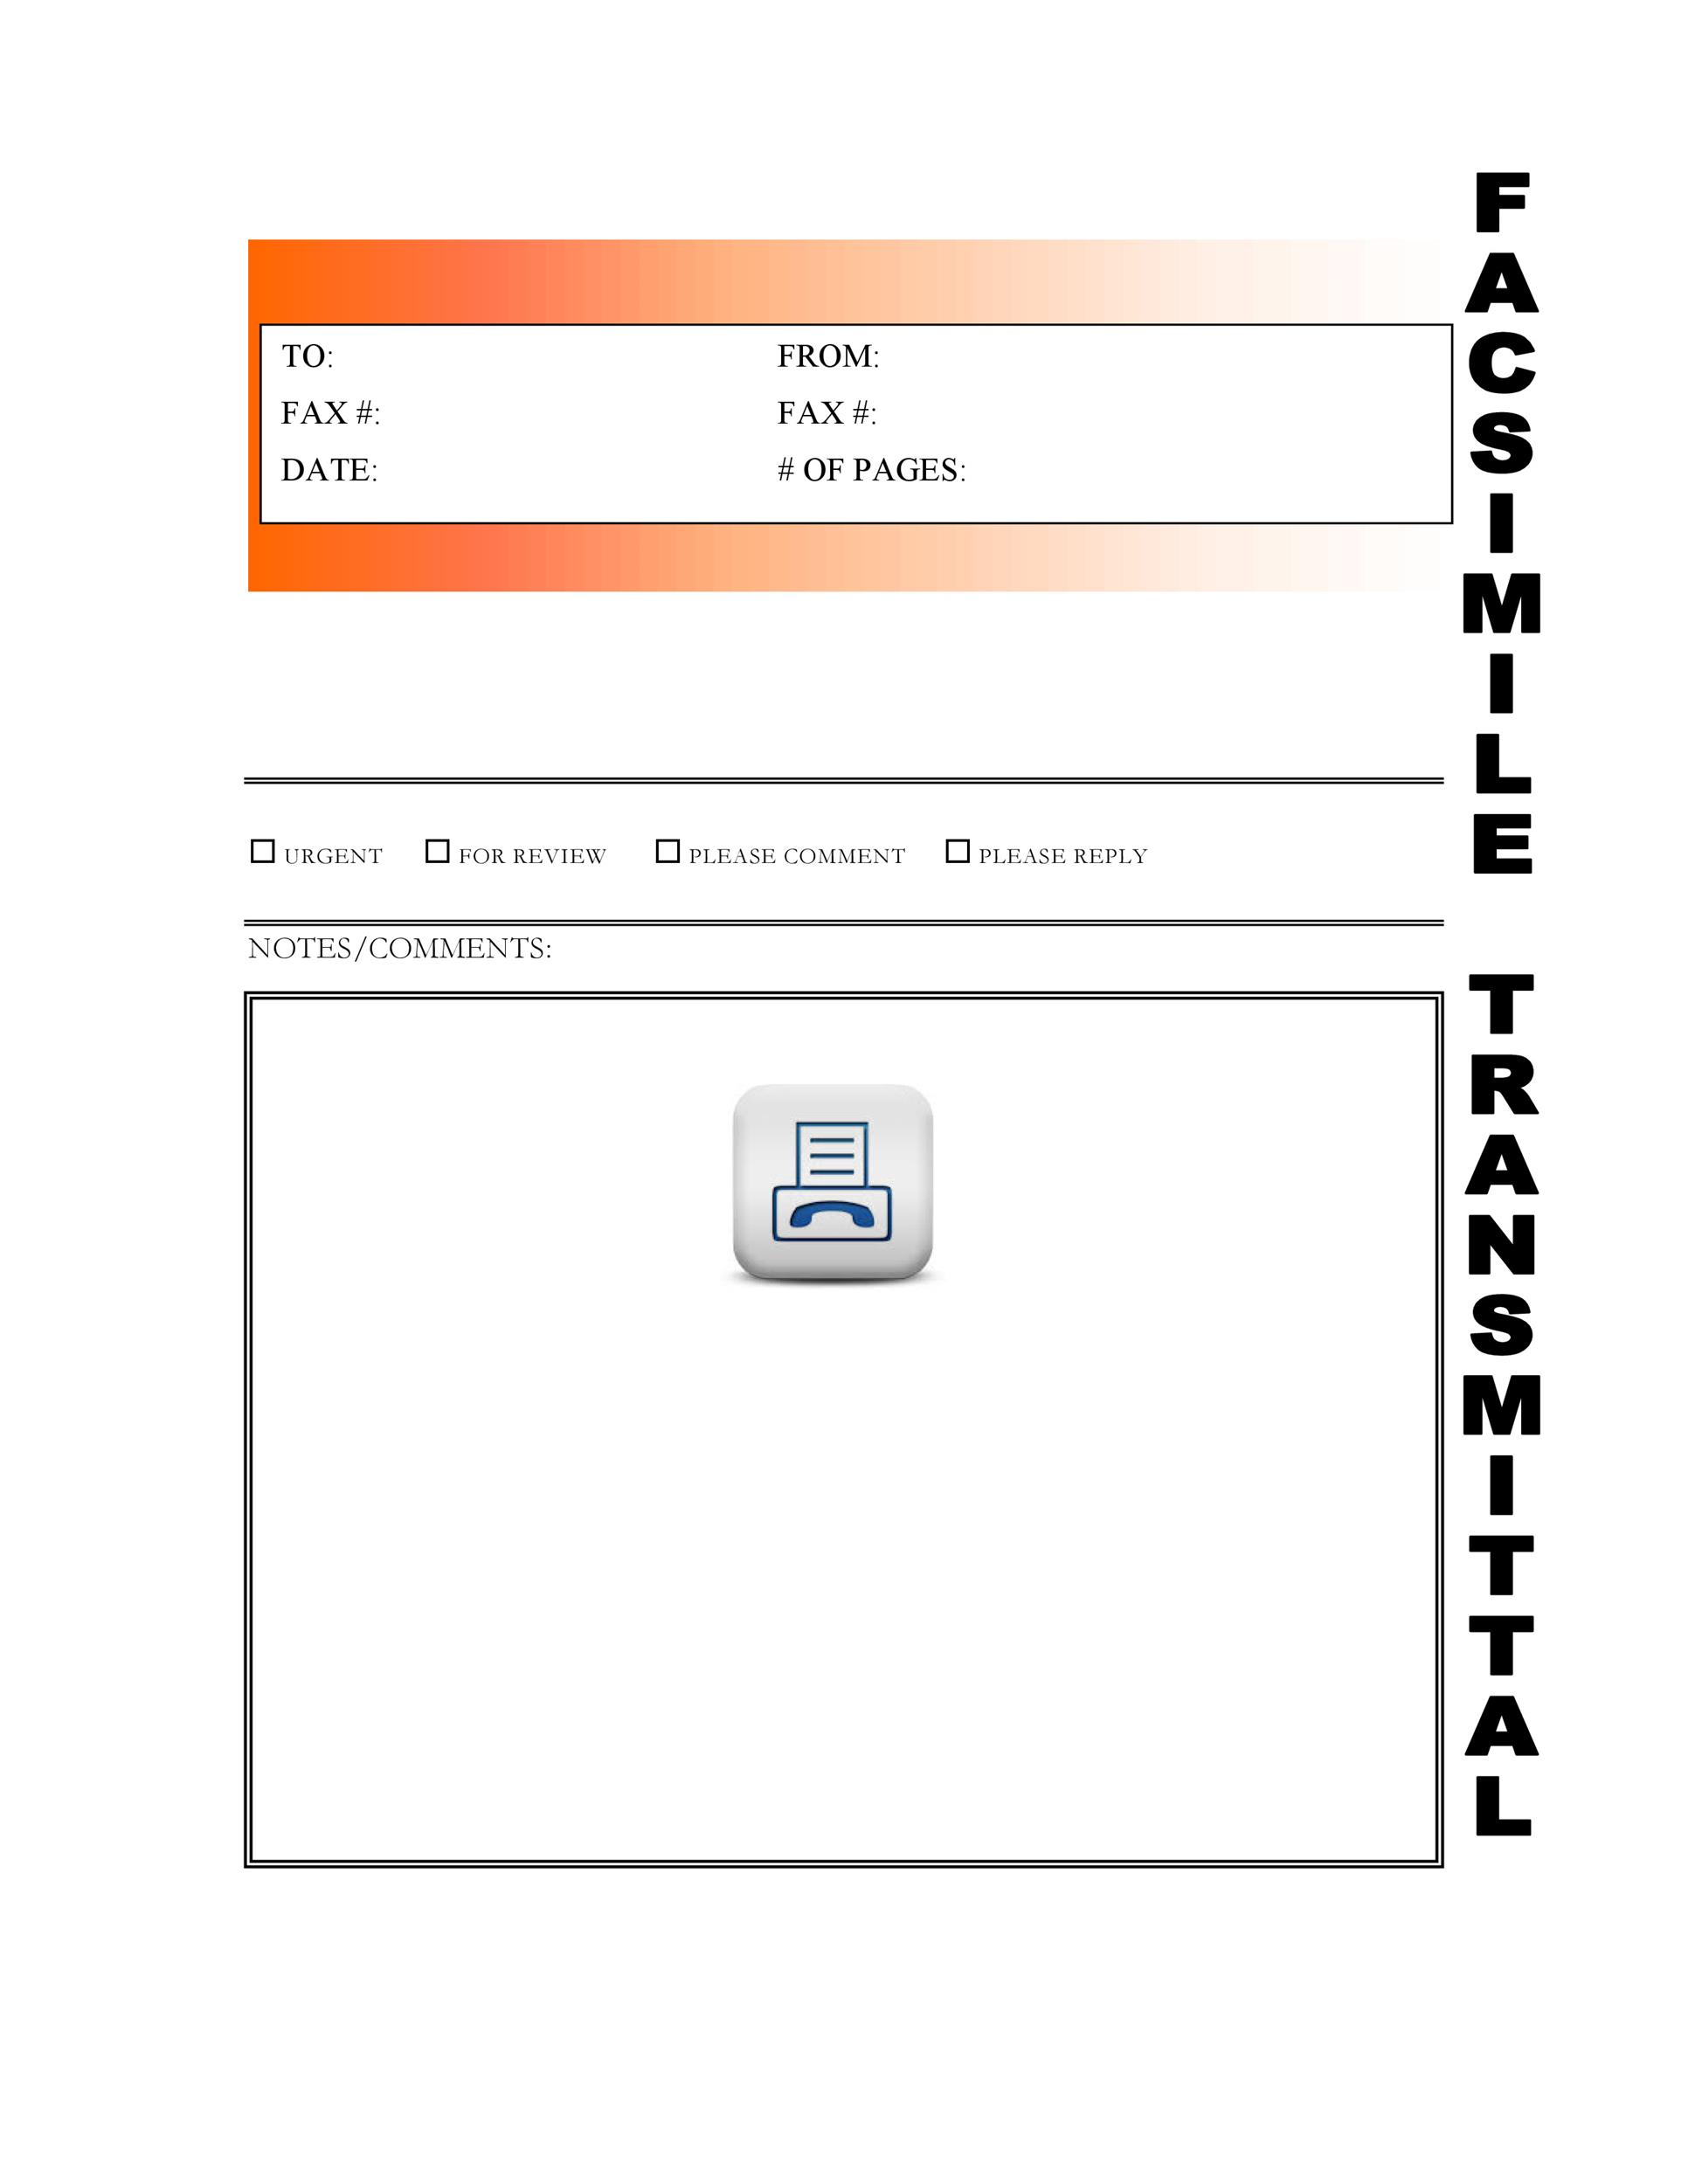 Printable Fax Cover Sheet Template 33  Fax Cover Sheet For Resume